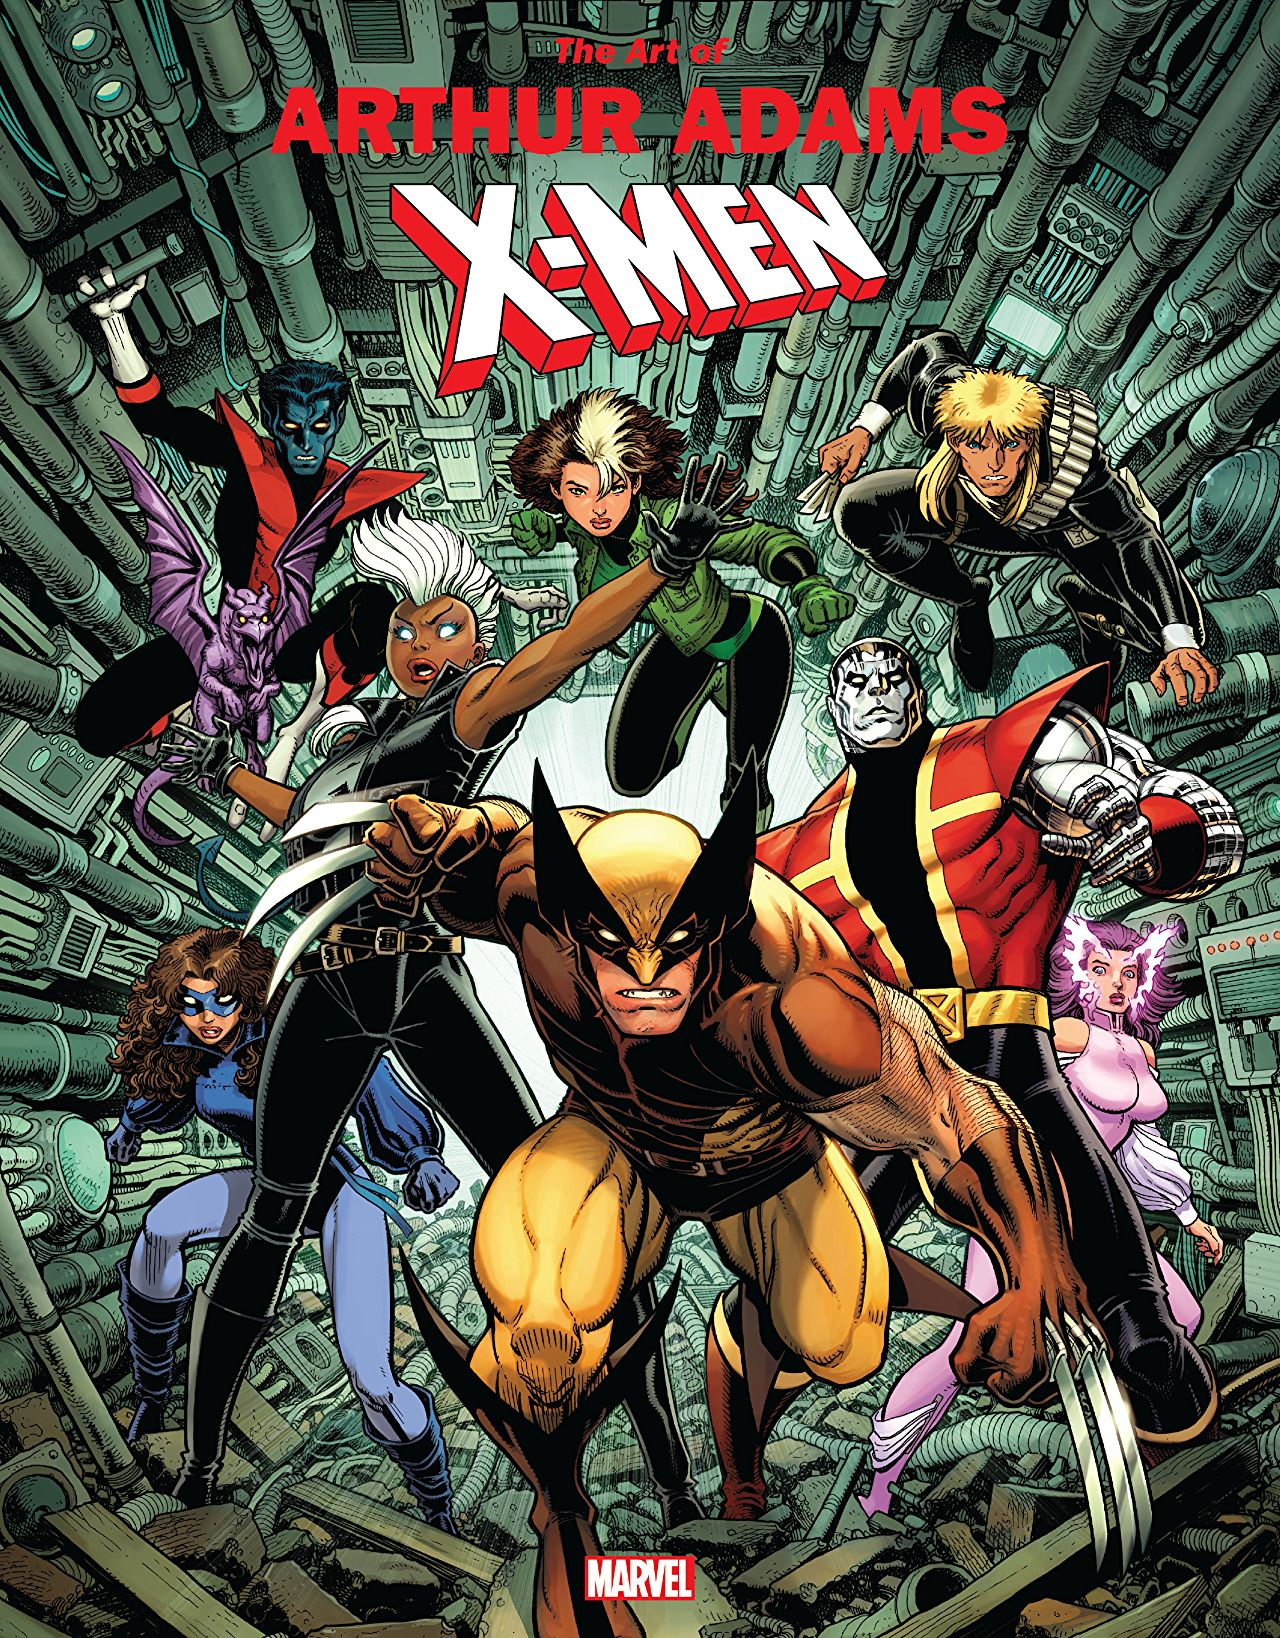 Marvel Monograph: The Art of Arthur Adams - X-Men review